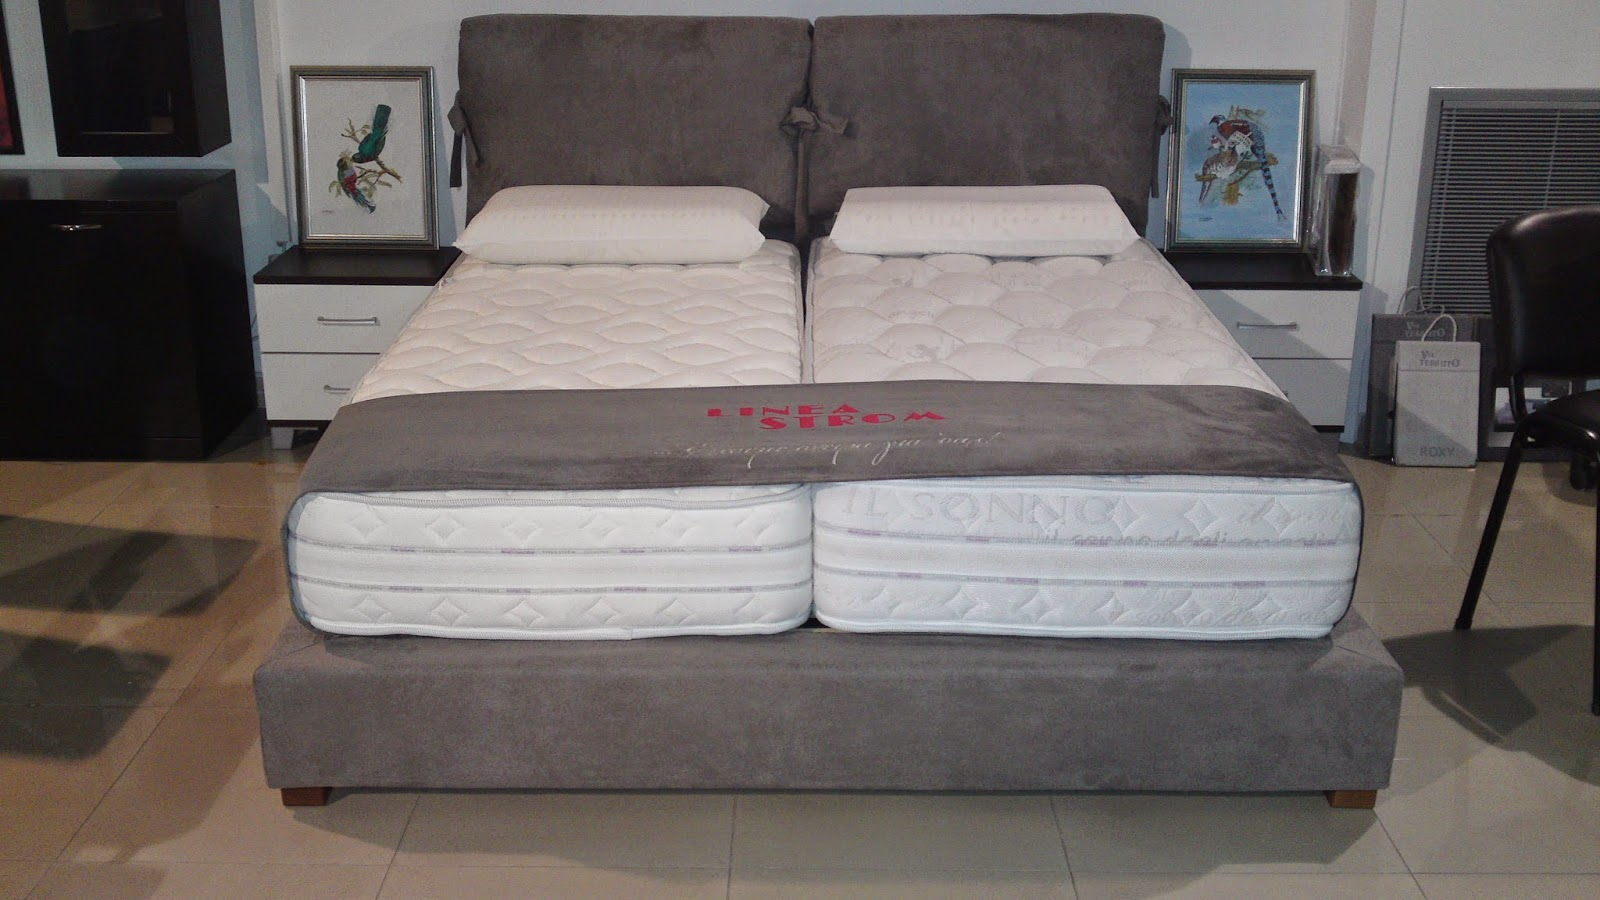 160 210 Krevati Prosfora King Size Bed Best Price 160